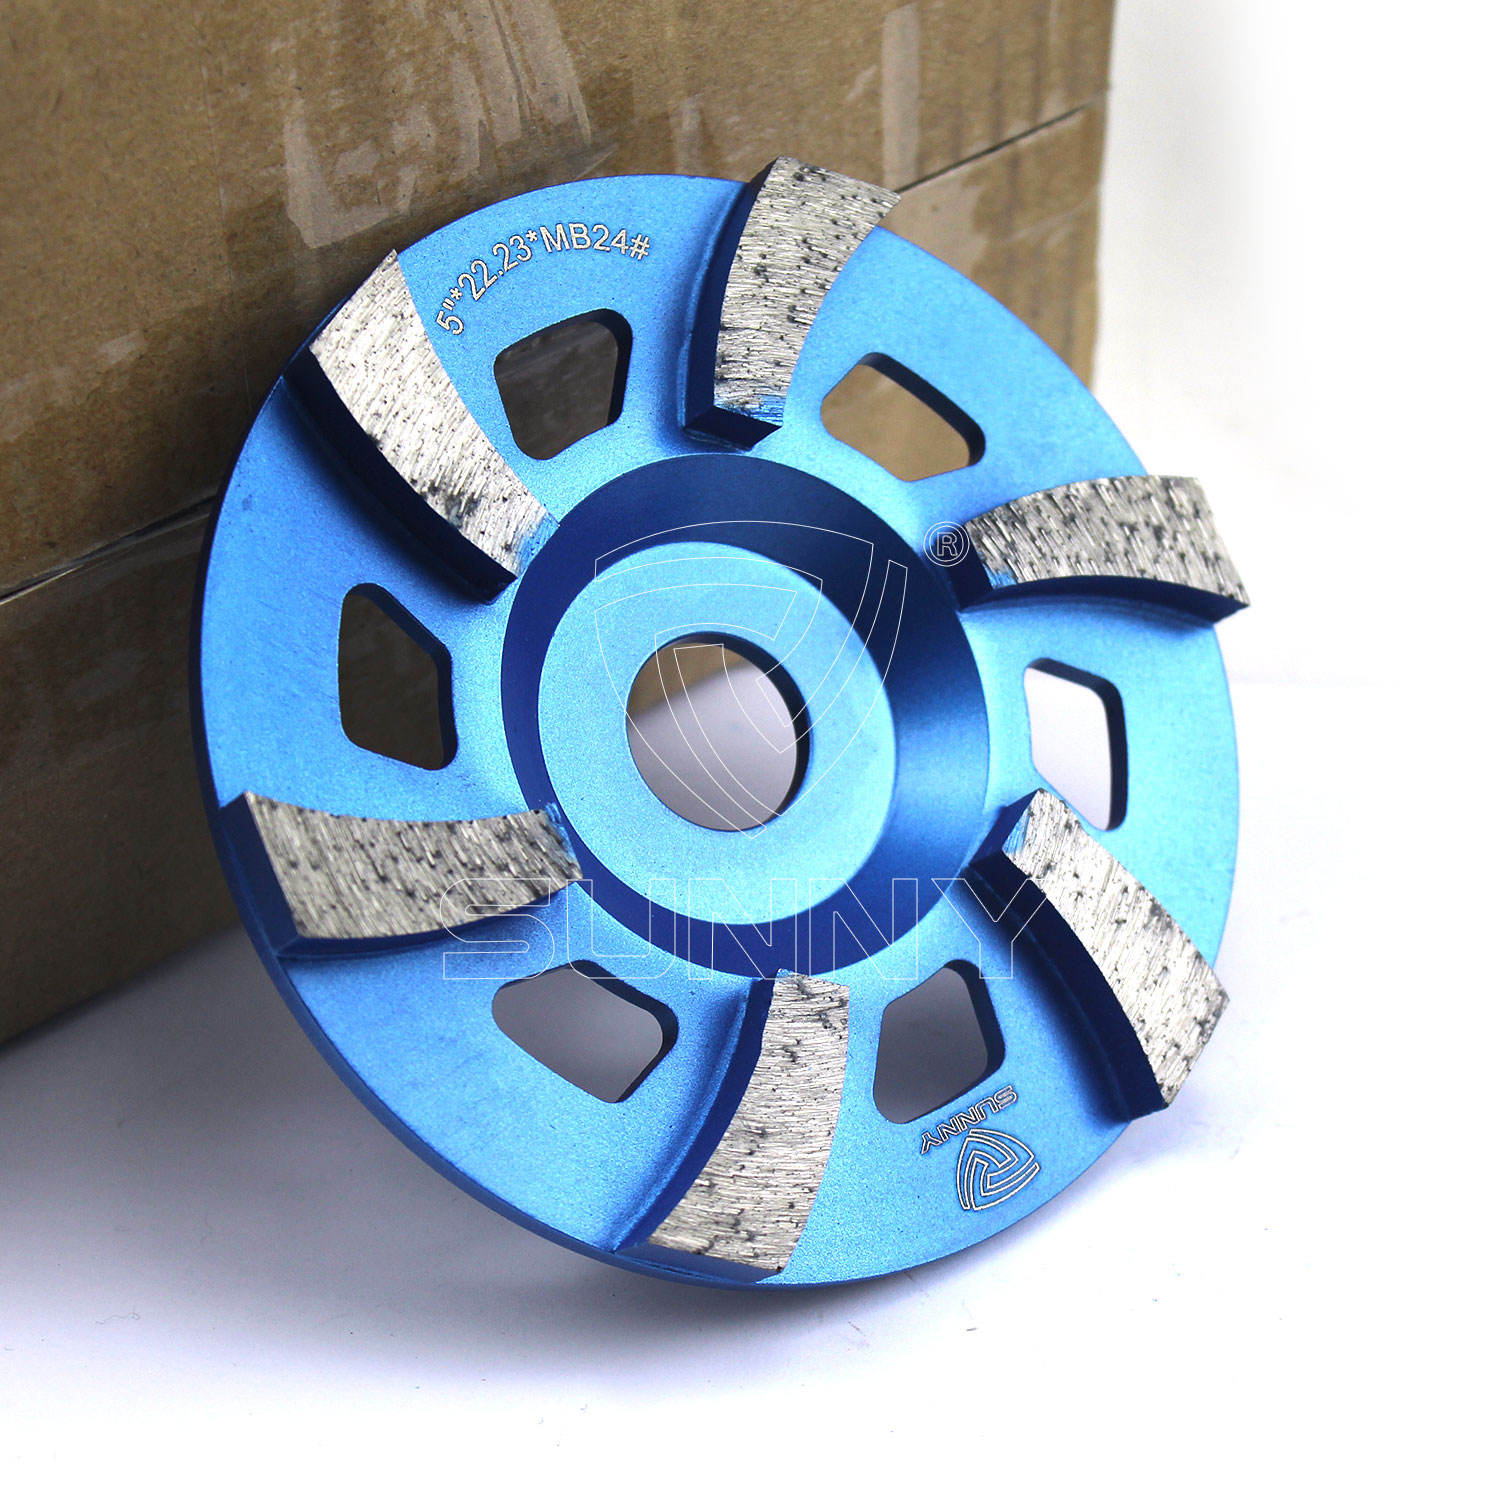 5 inch M14 Turbo Diamond grinding wheels for concrete and stone